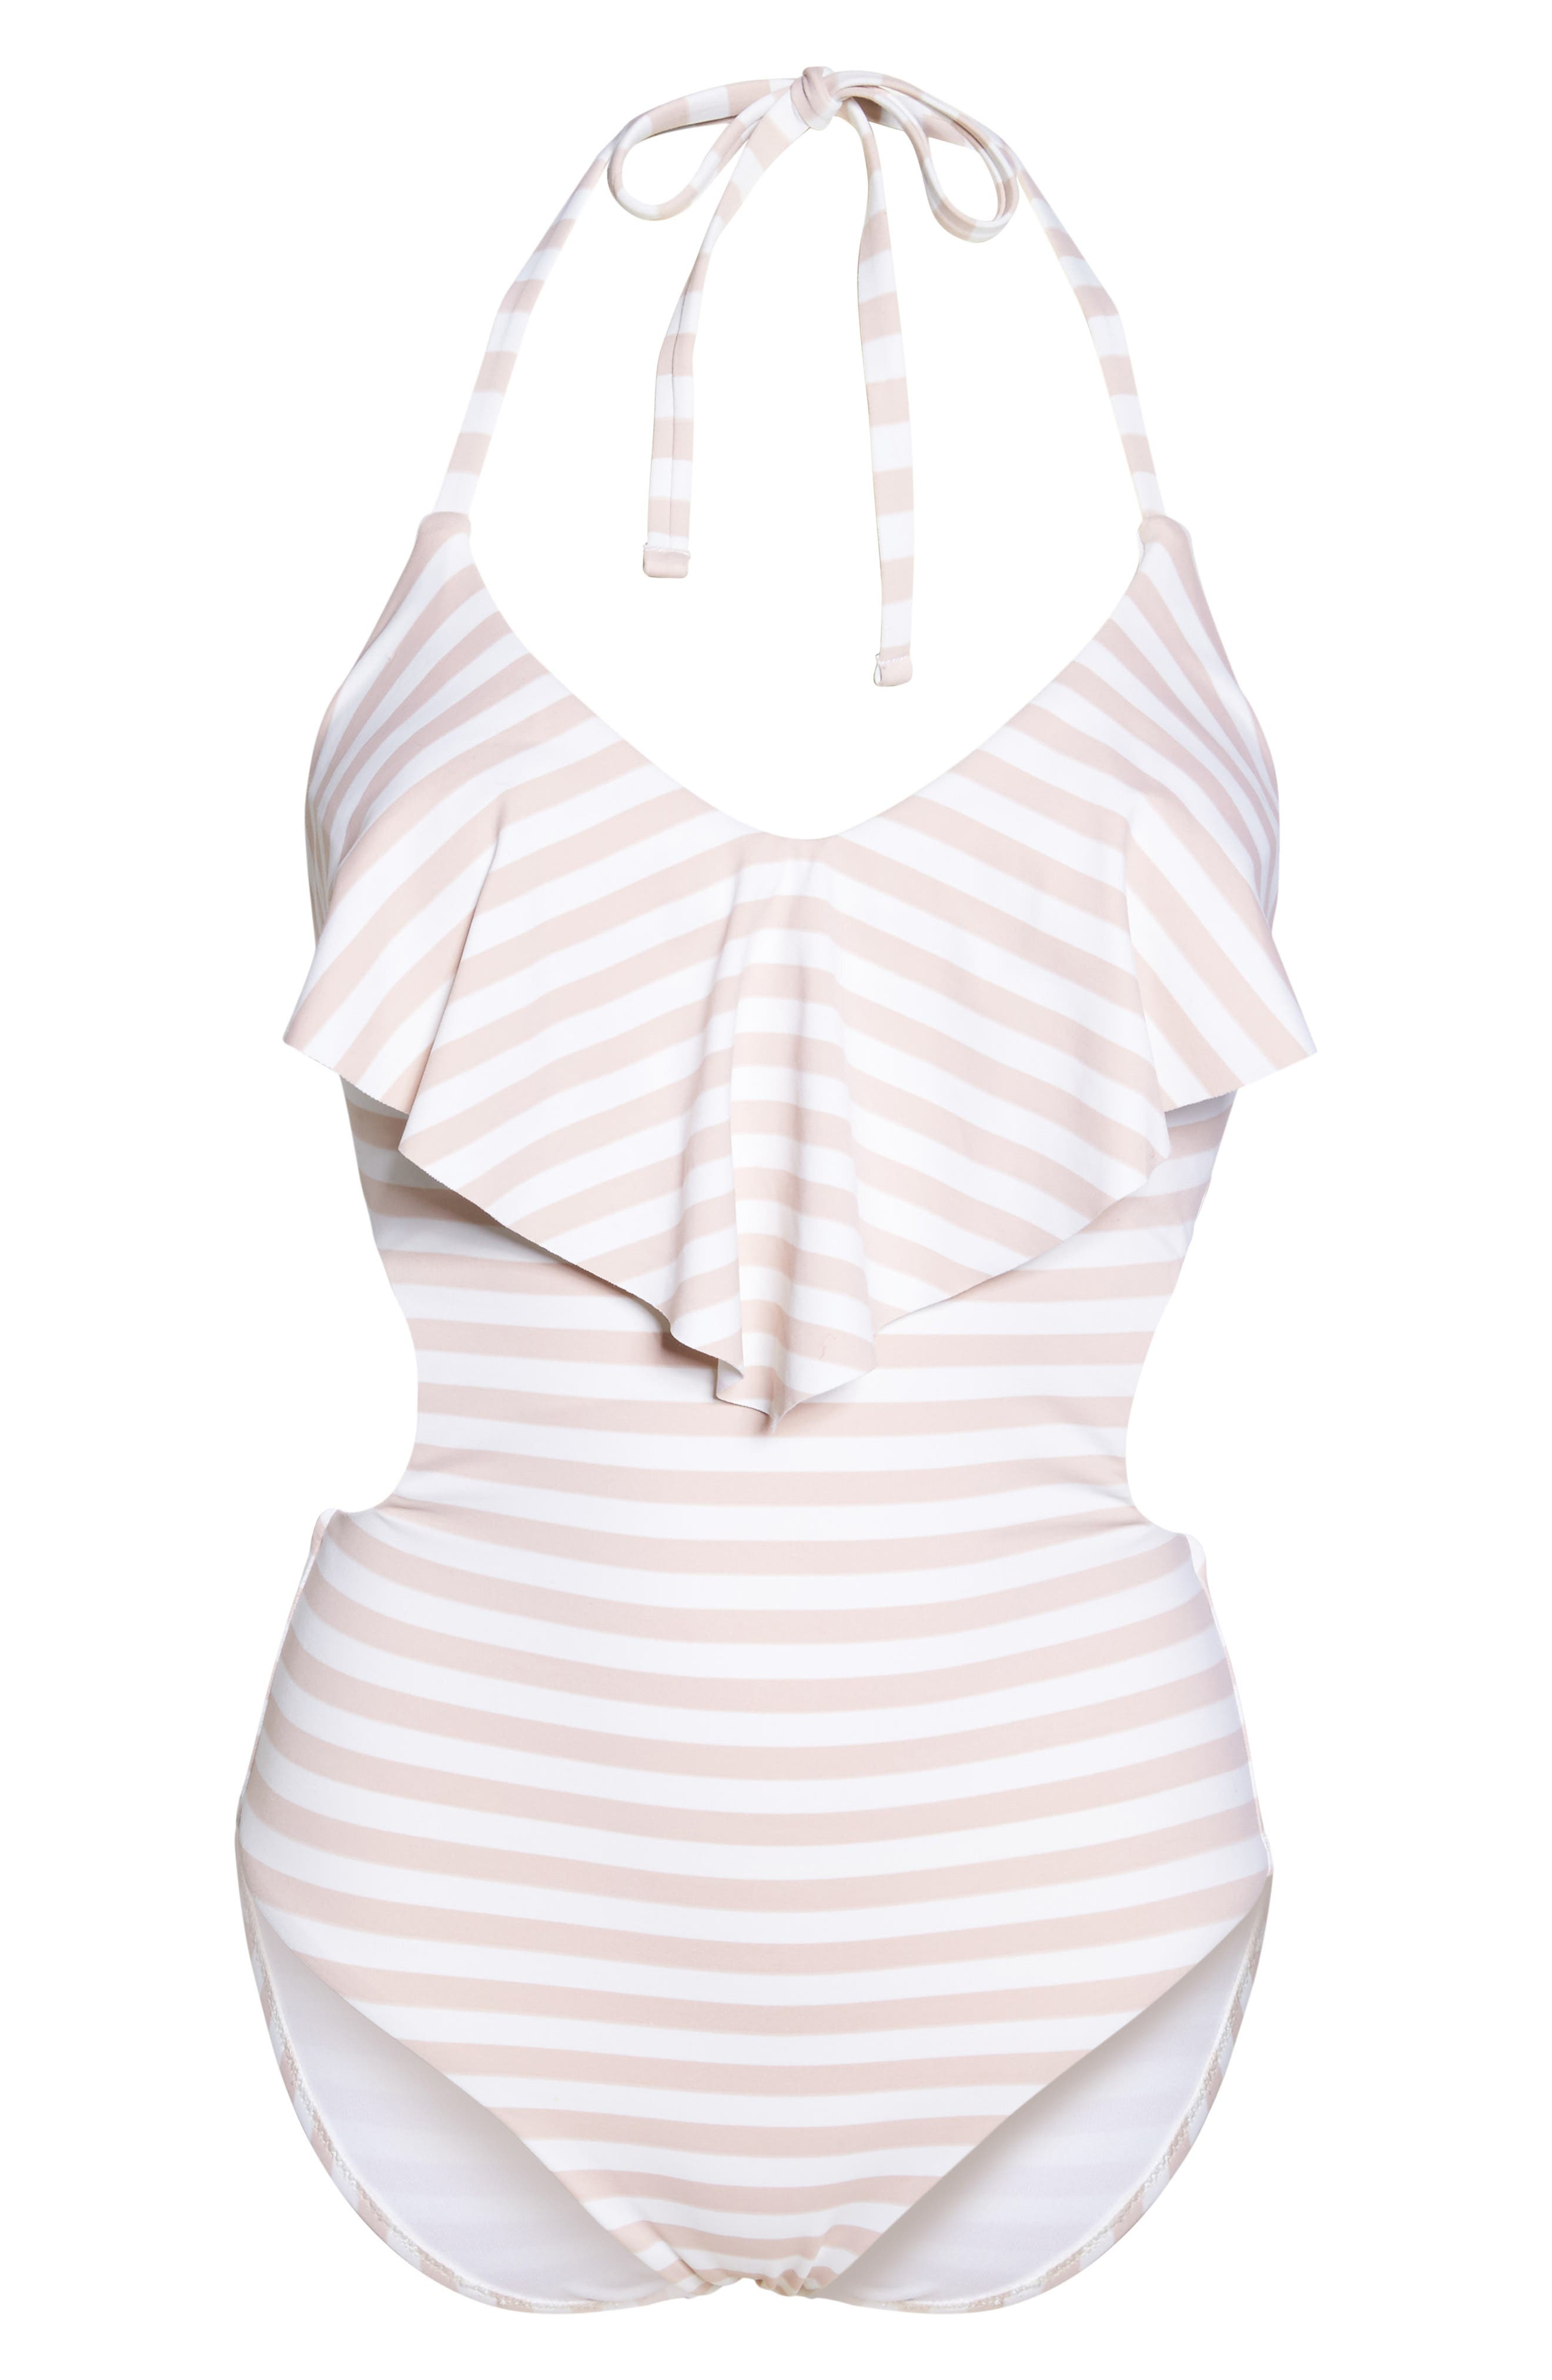 Ruffle One-Piece Swimsuit,                             Alternate thumbnail 6, color,                             660